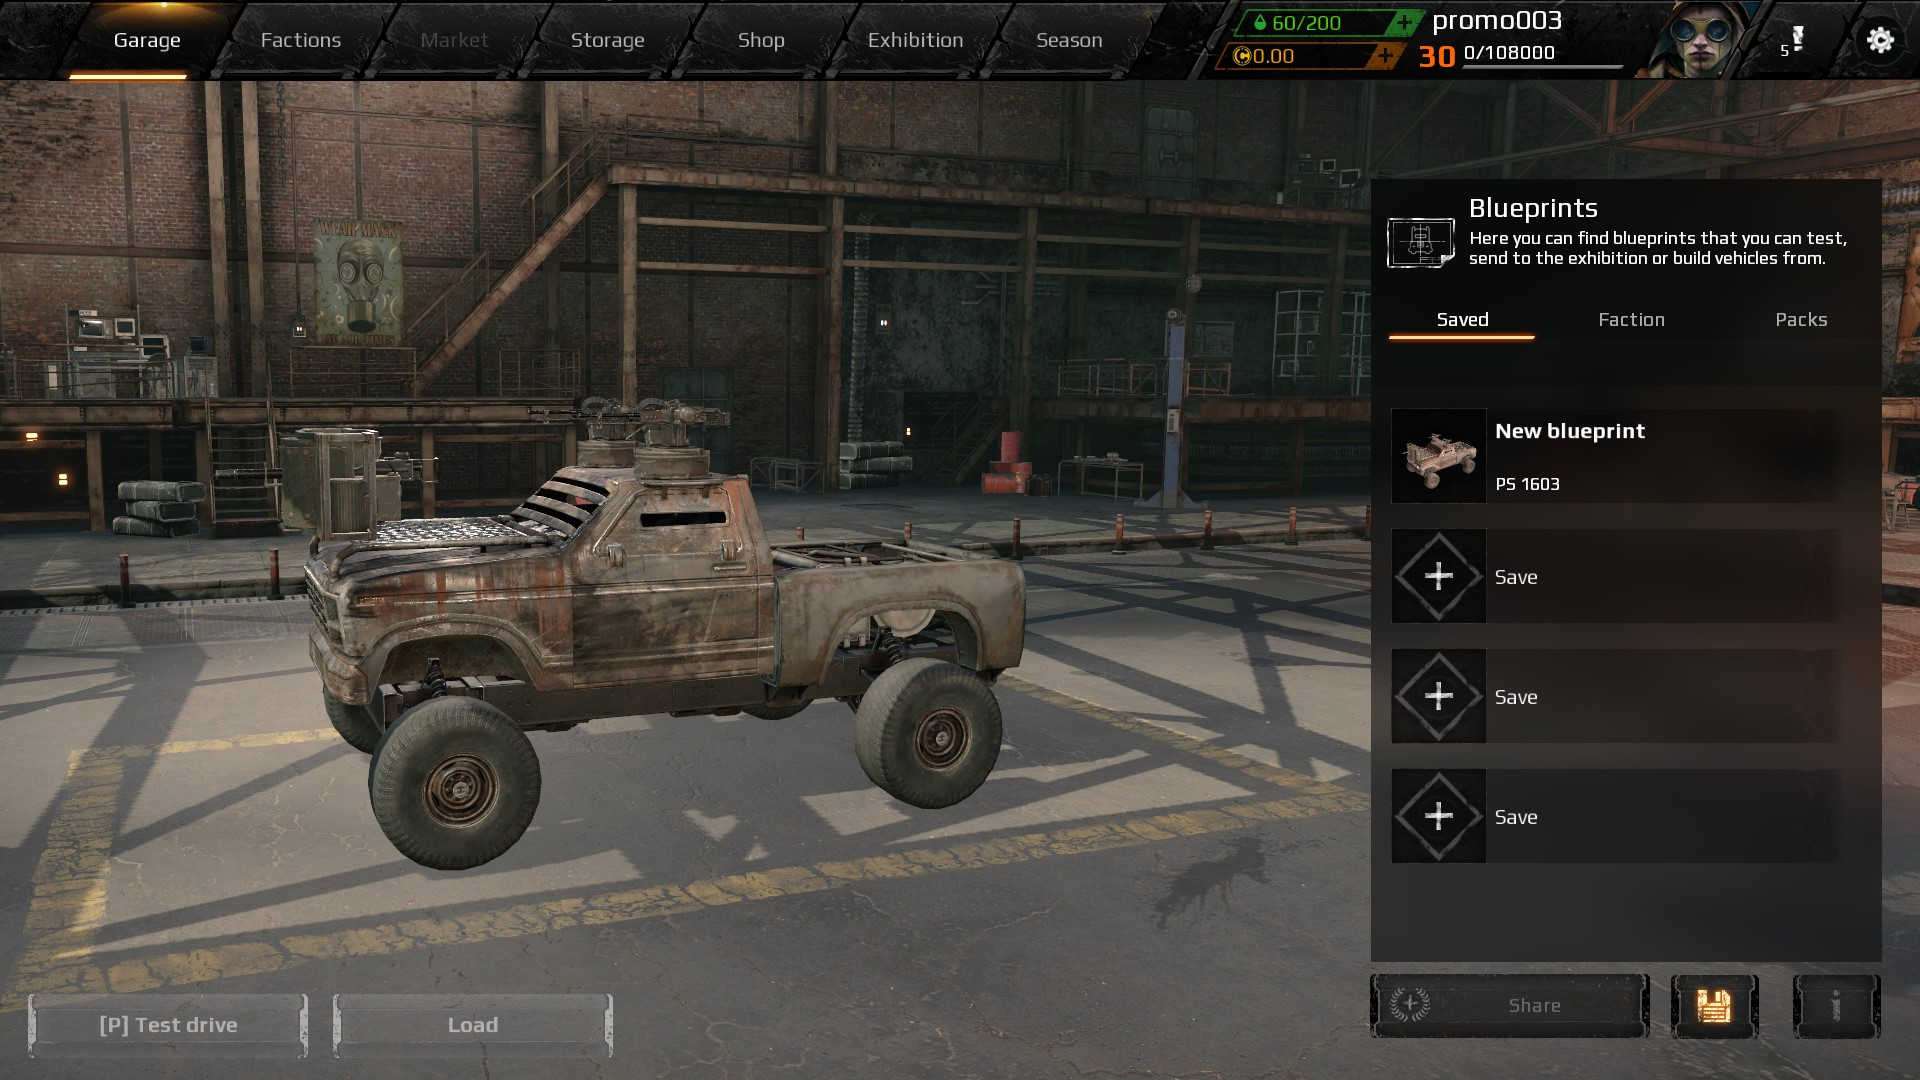 Communaut steam guide crossout game guide in order to save the most successful designs you can use the blueprints functionality fixed snapshots of cars in the garage which can be downloaded at malvernweather Images